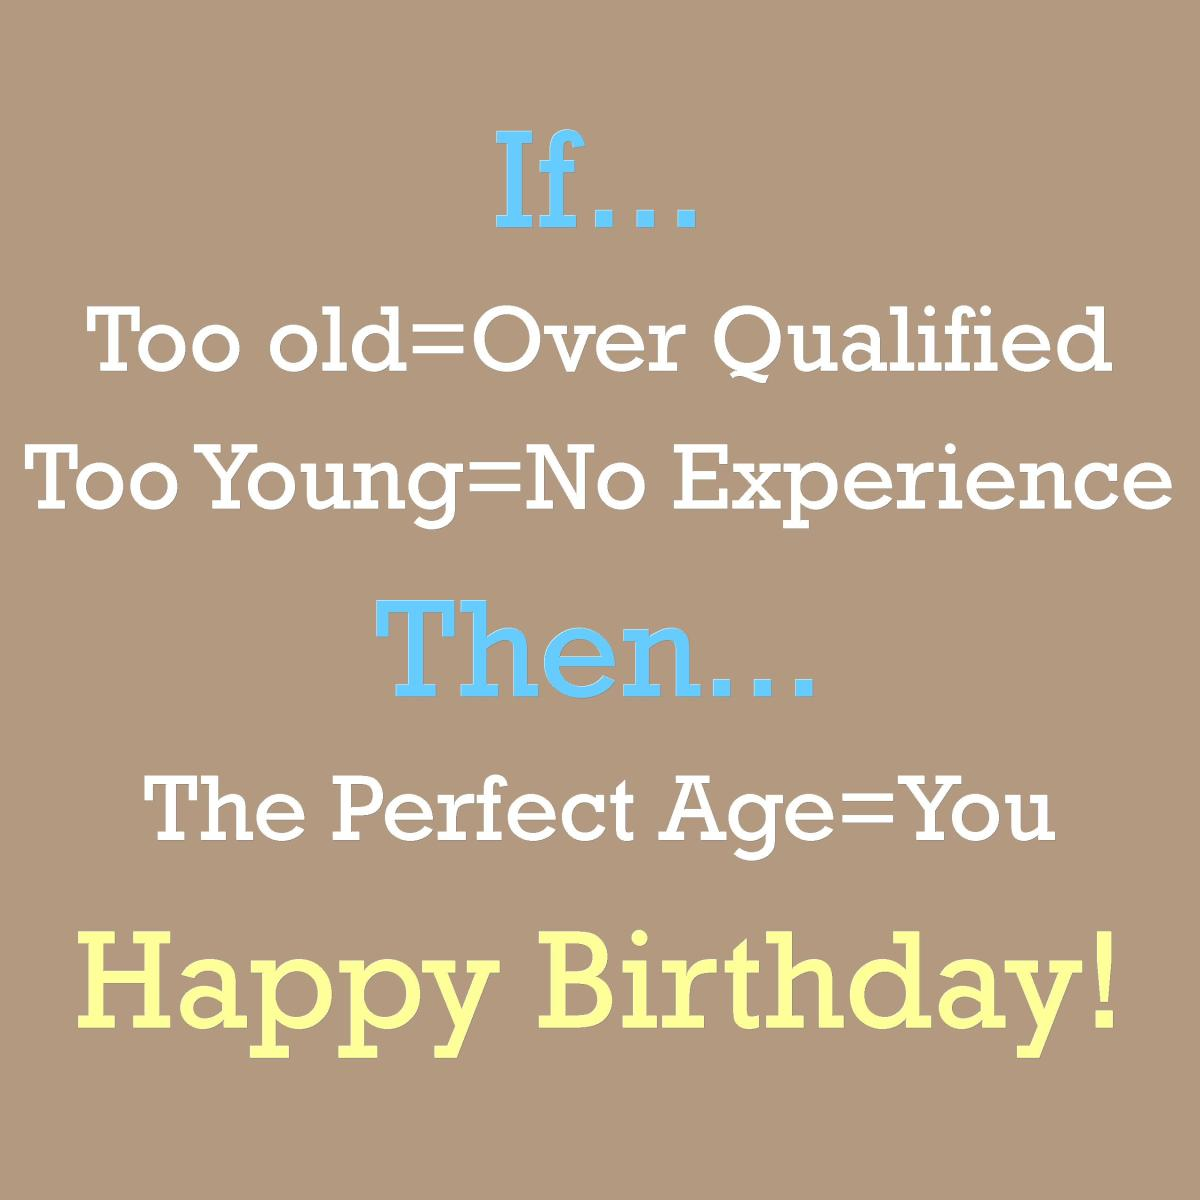 If too old equals overqualified and too young equals no experience, then the perfect age equals you. Happy Birthday!